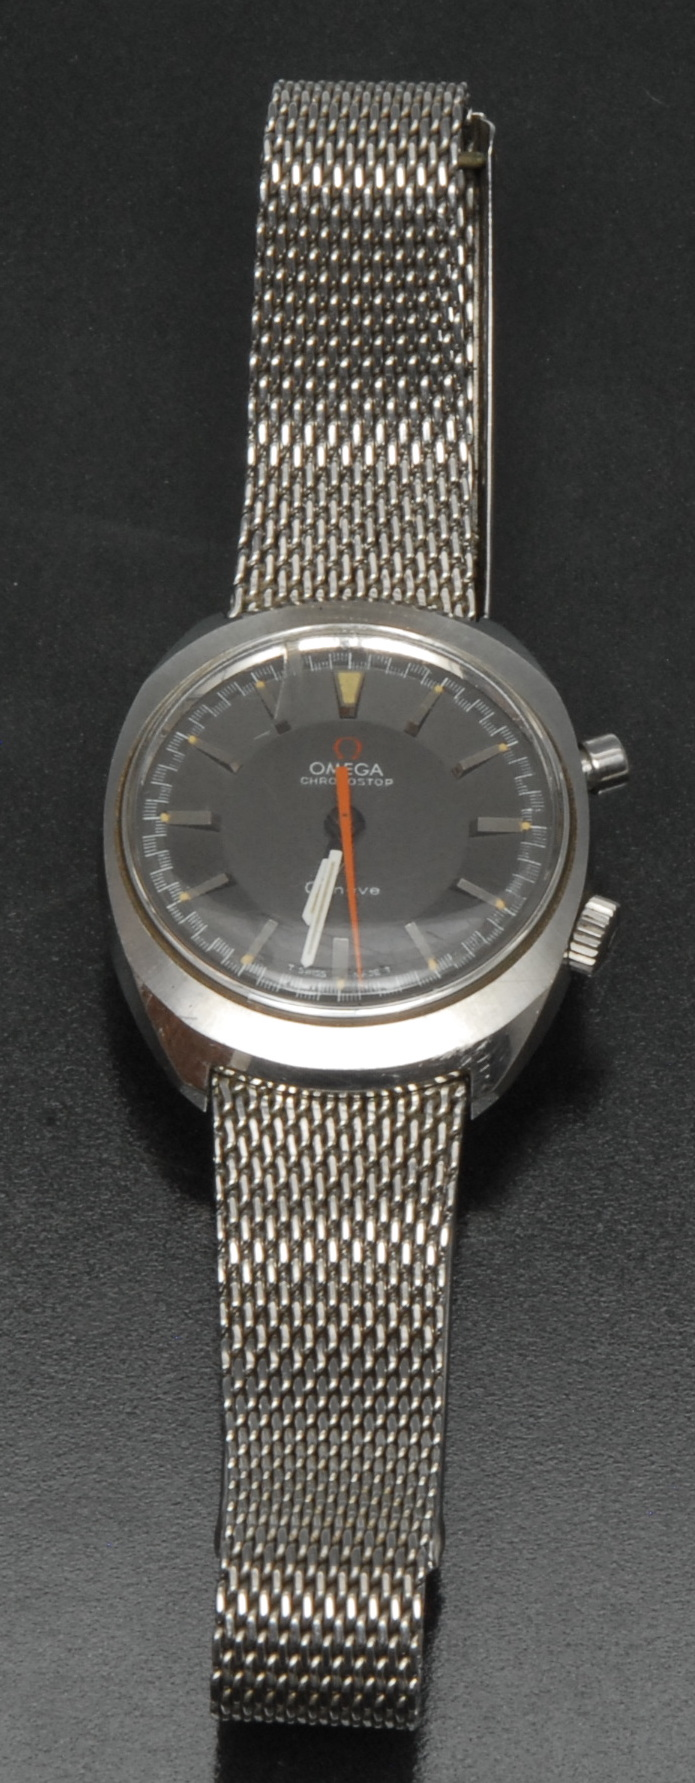 Lot 3014 - Omega - a vintage 1960s Chronostop wristwatch. Ref 145.